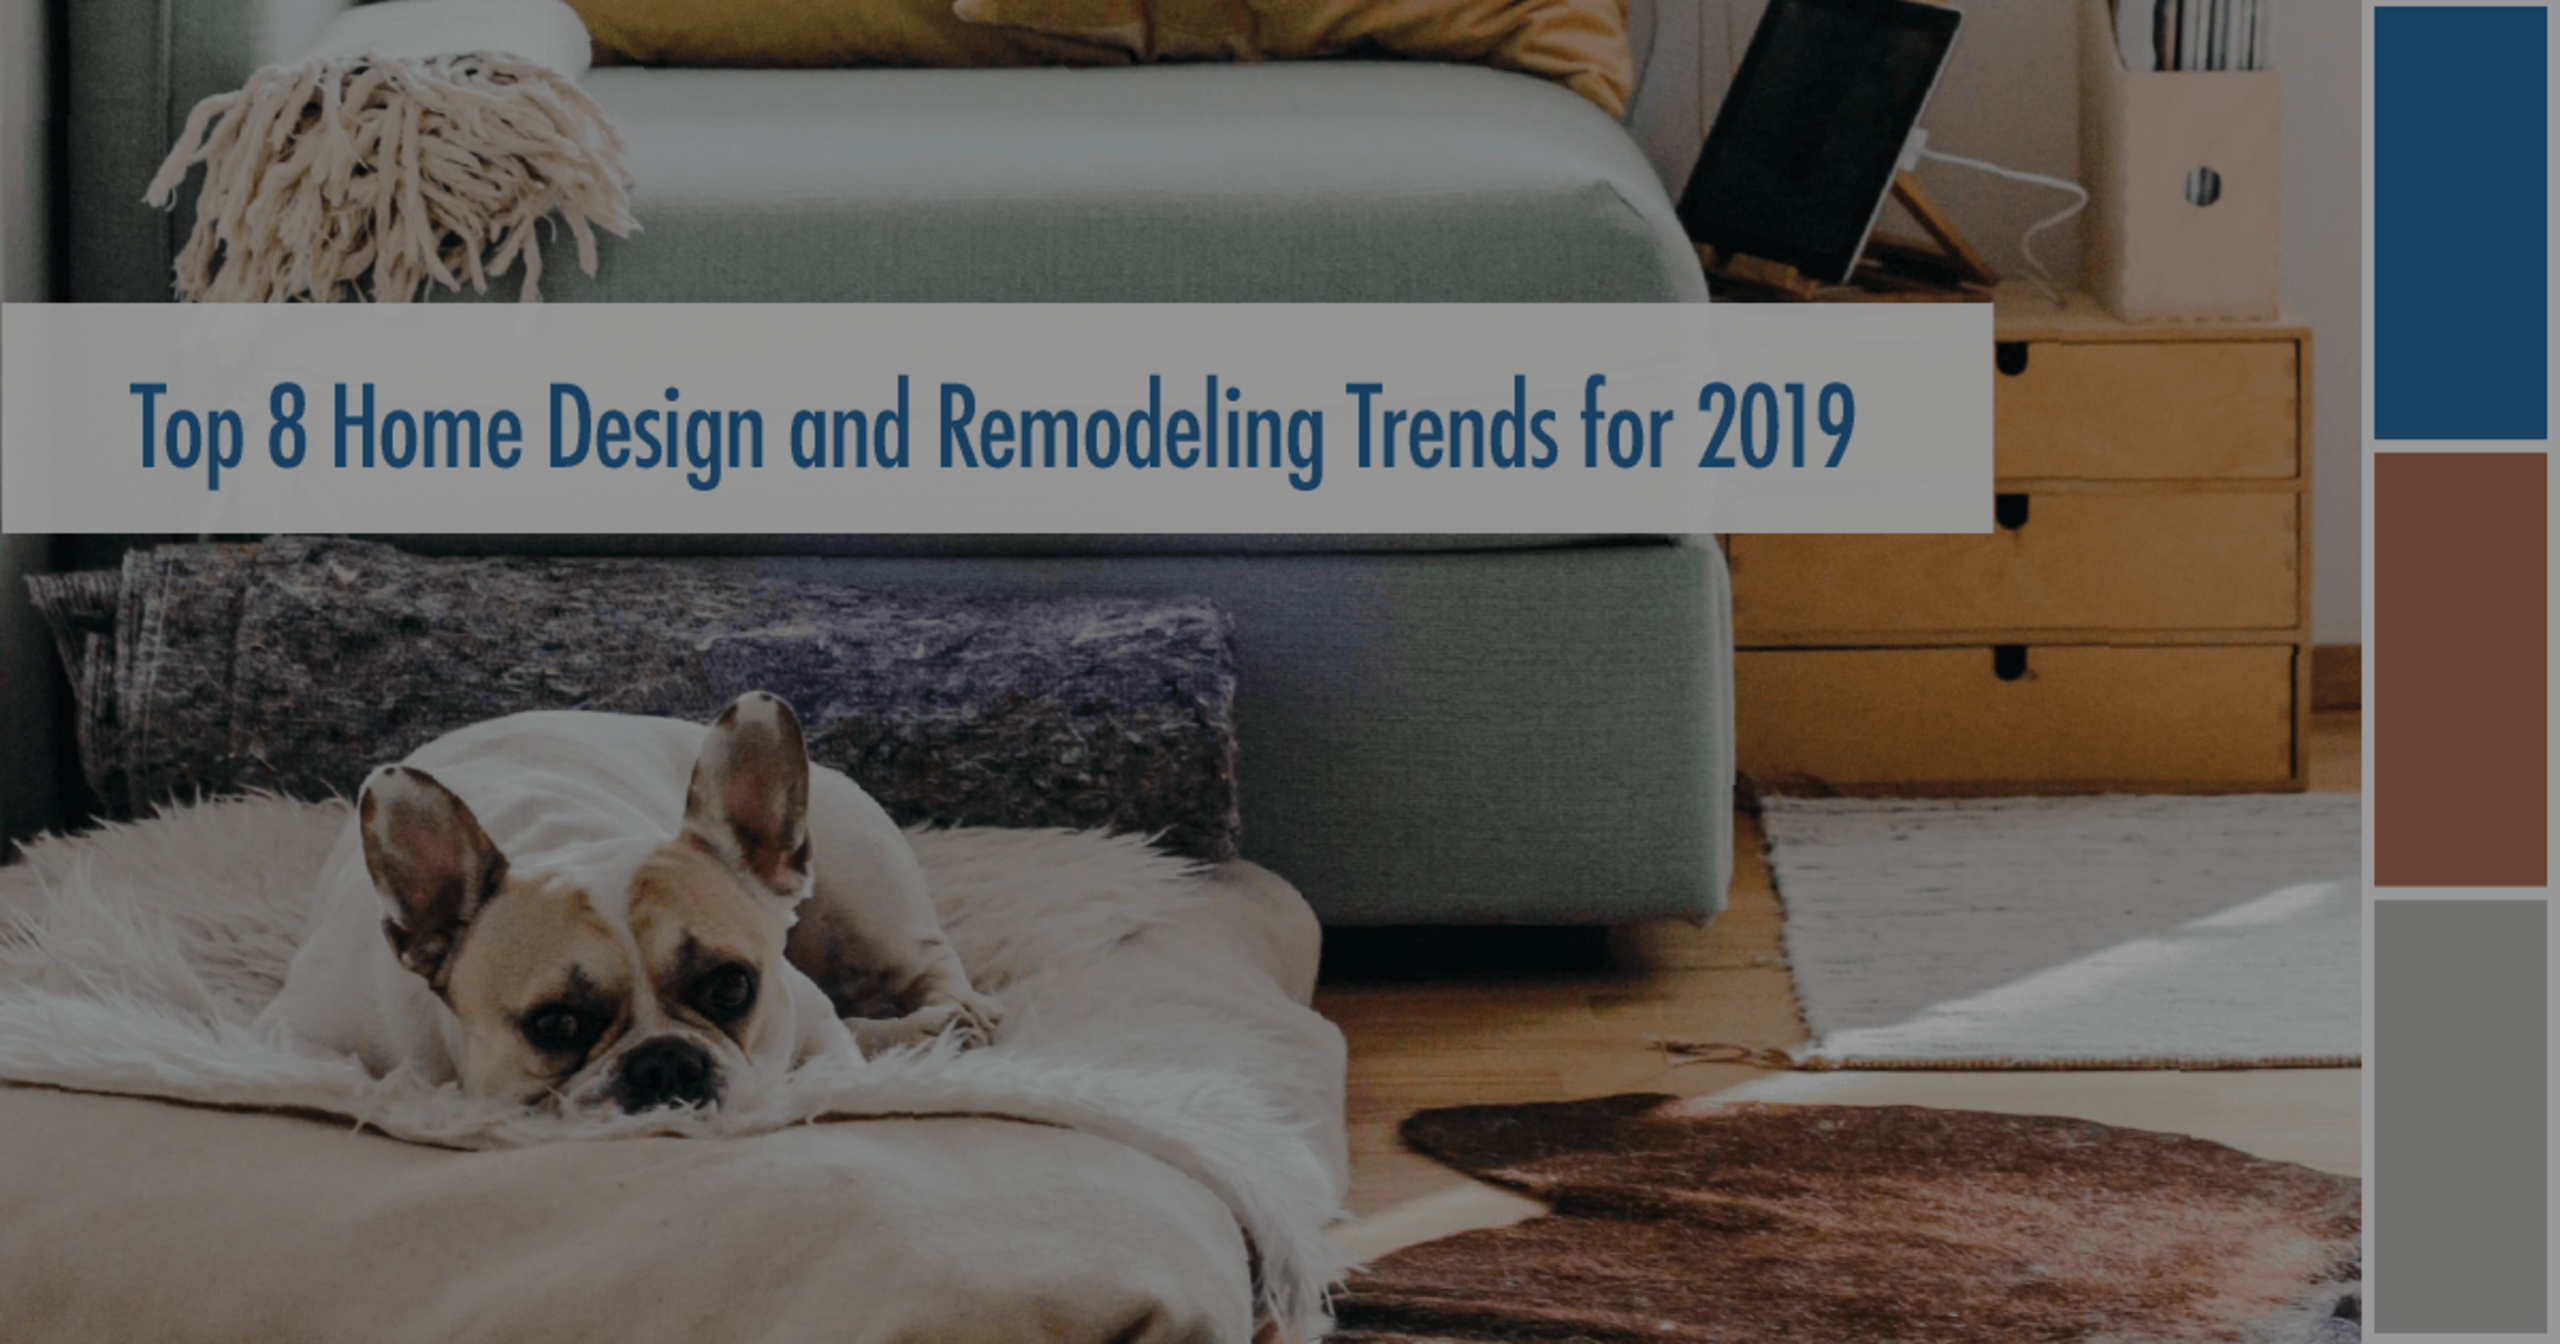 Top 8 Home Design Trends For 2019